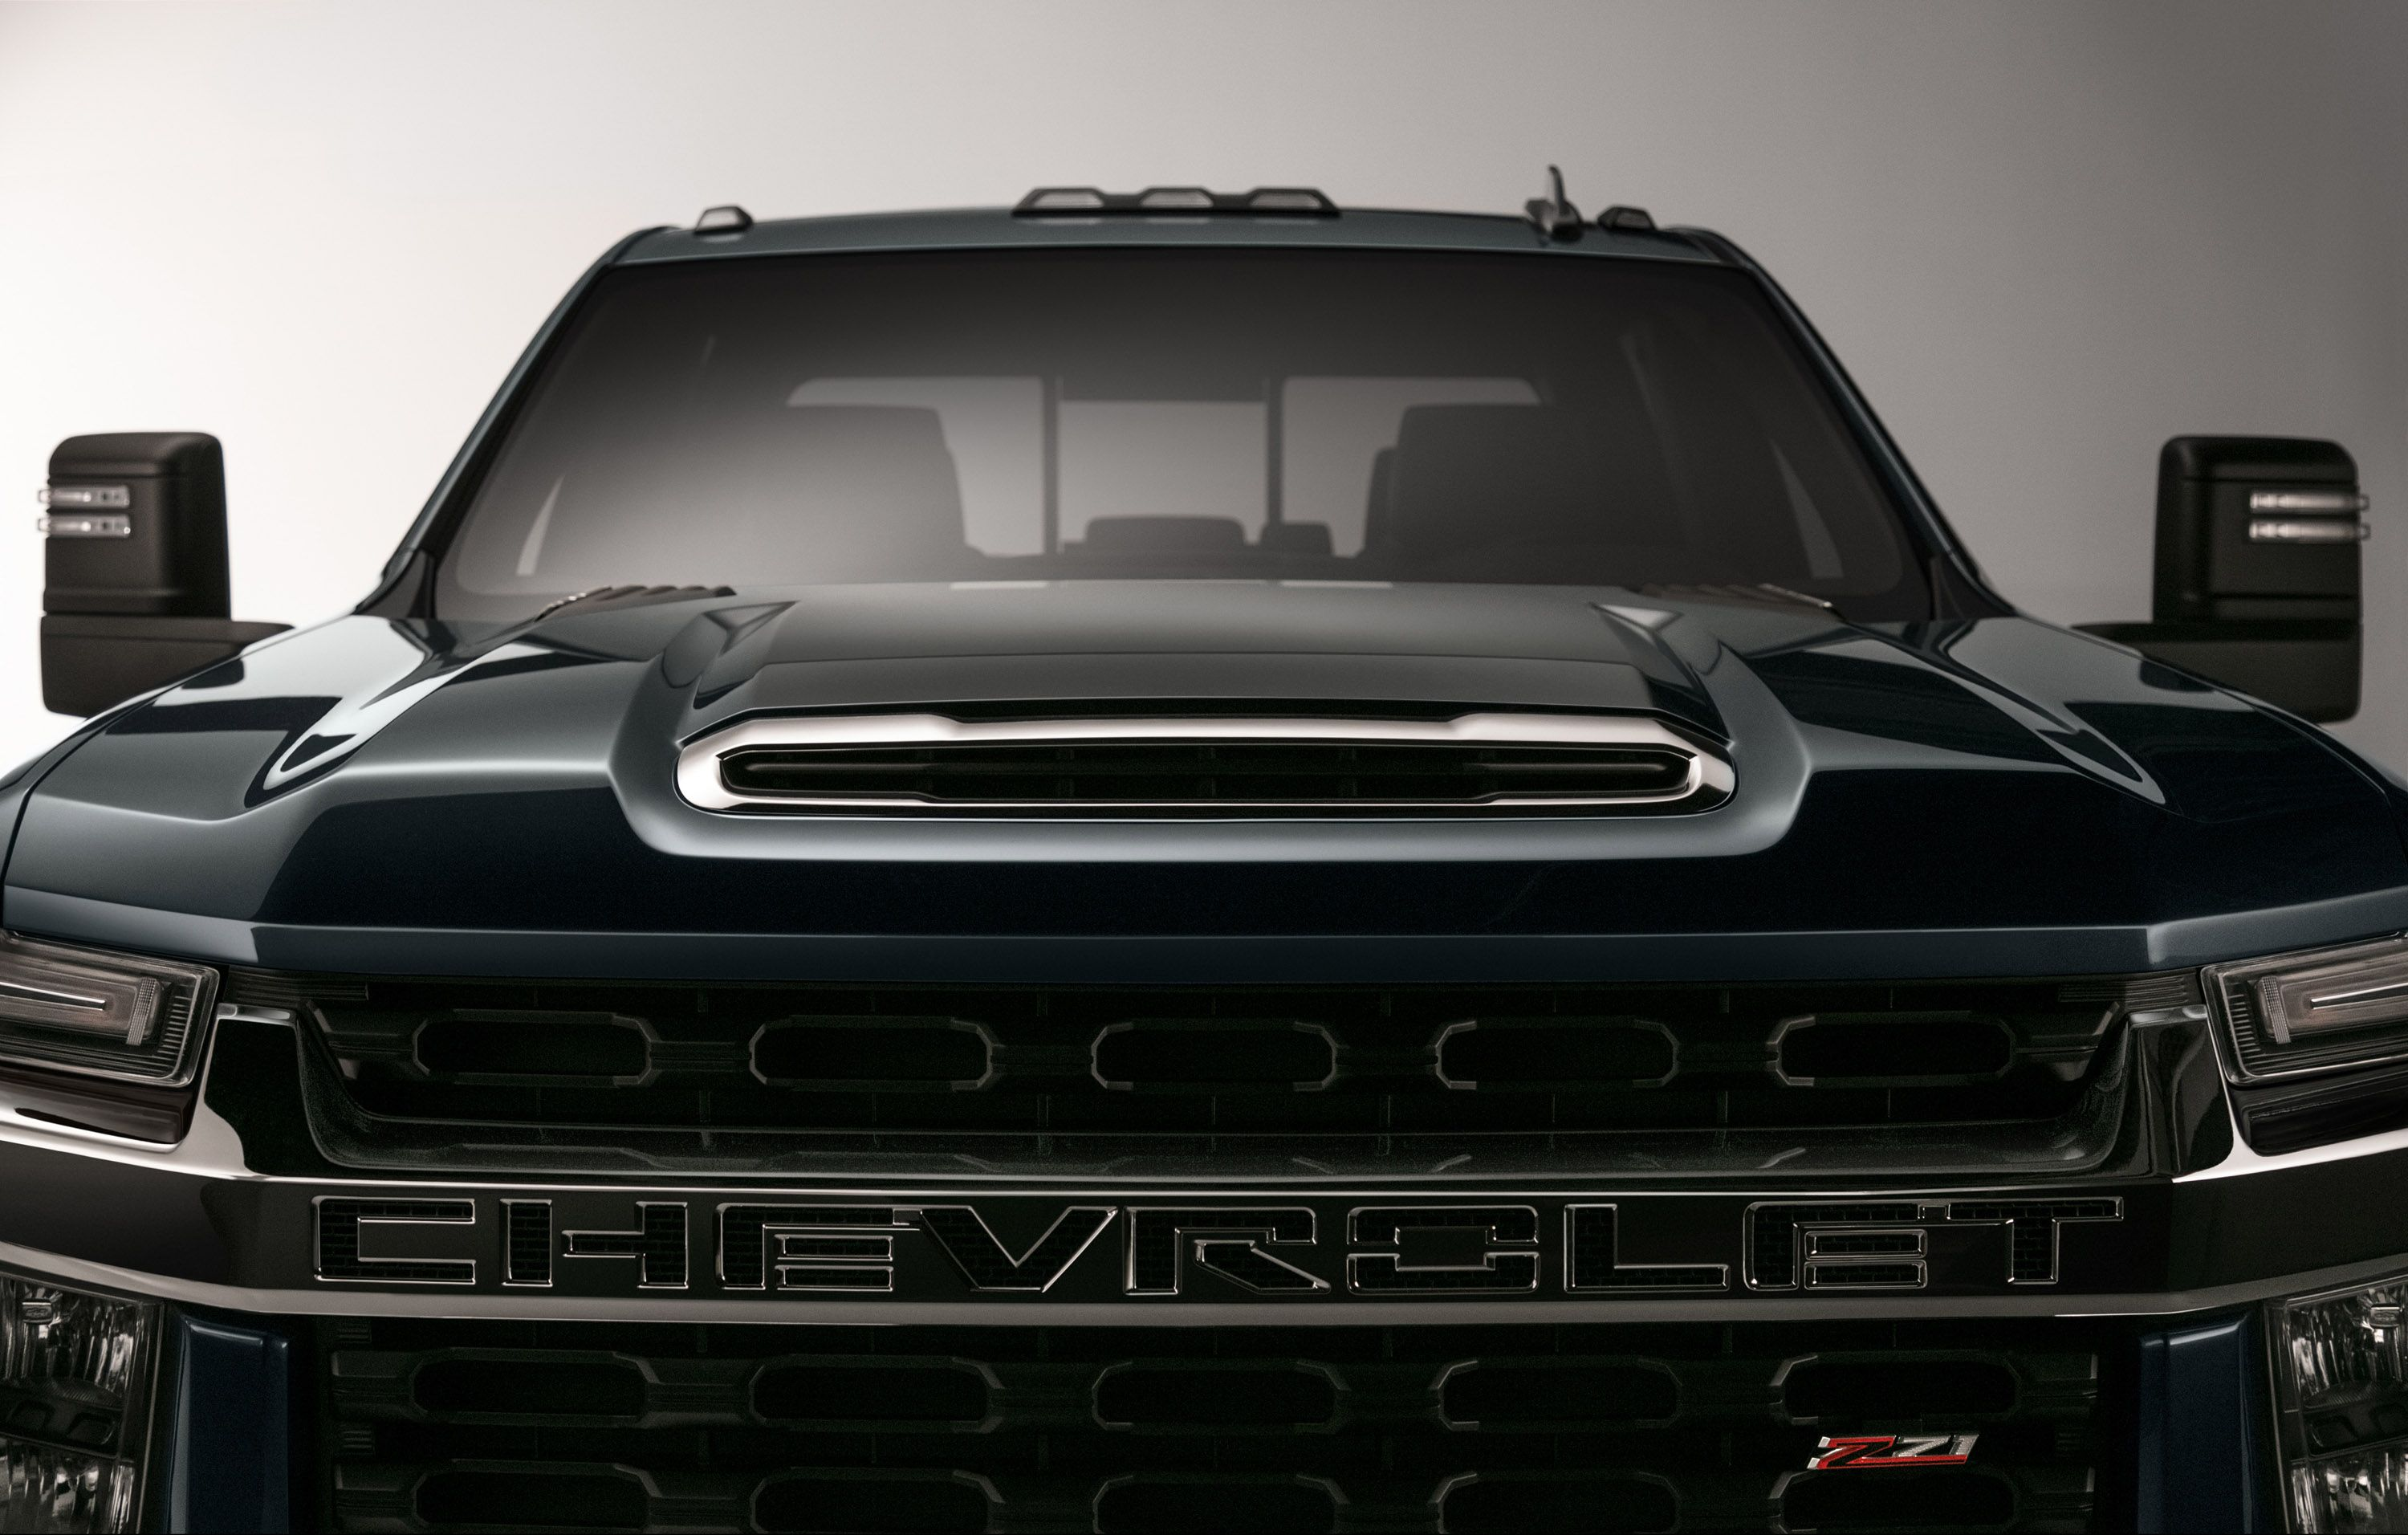 Chevy Team Announces Details About The Upcoming 2020 Silverado Hd Lineup Silverado Hd Chevy Silverado Hd Chevrolet Silverado